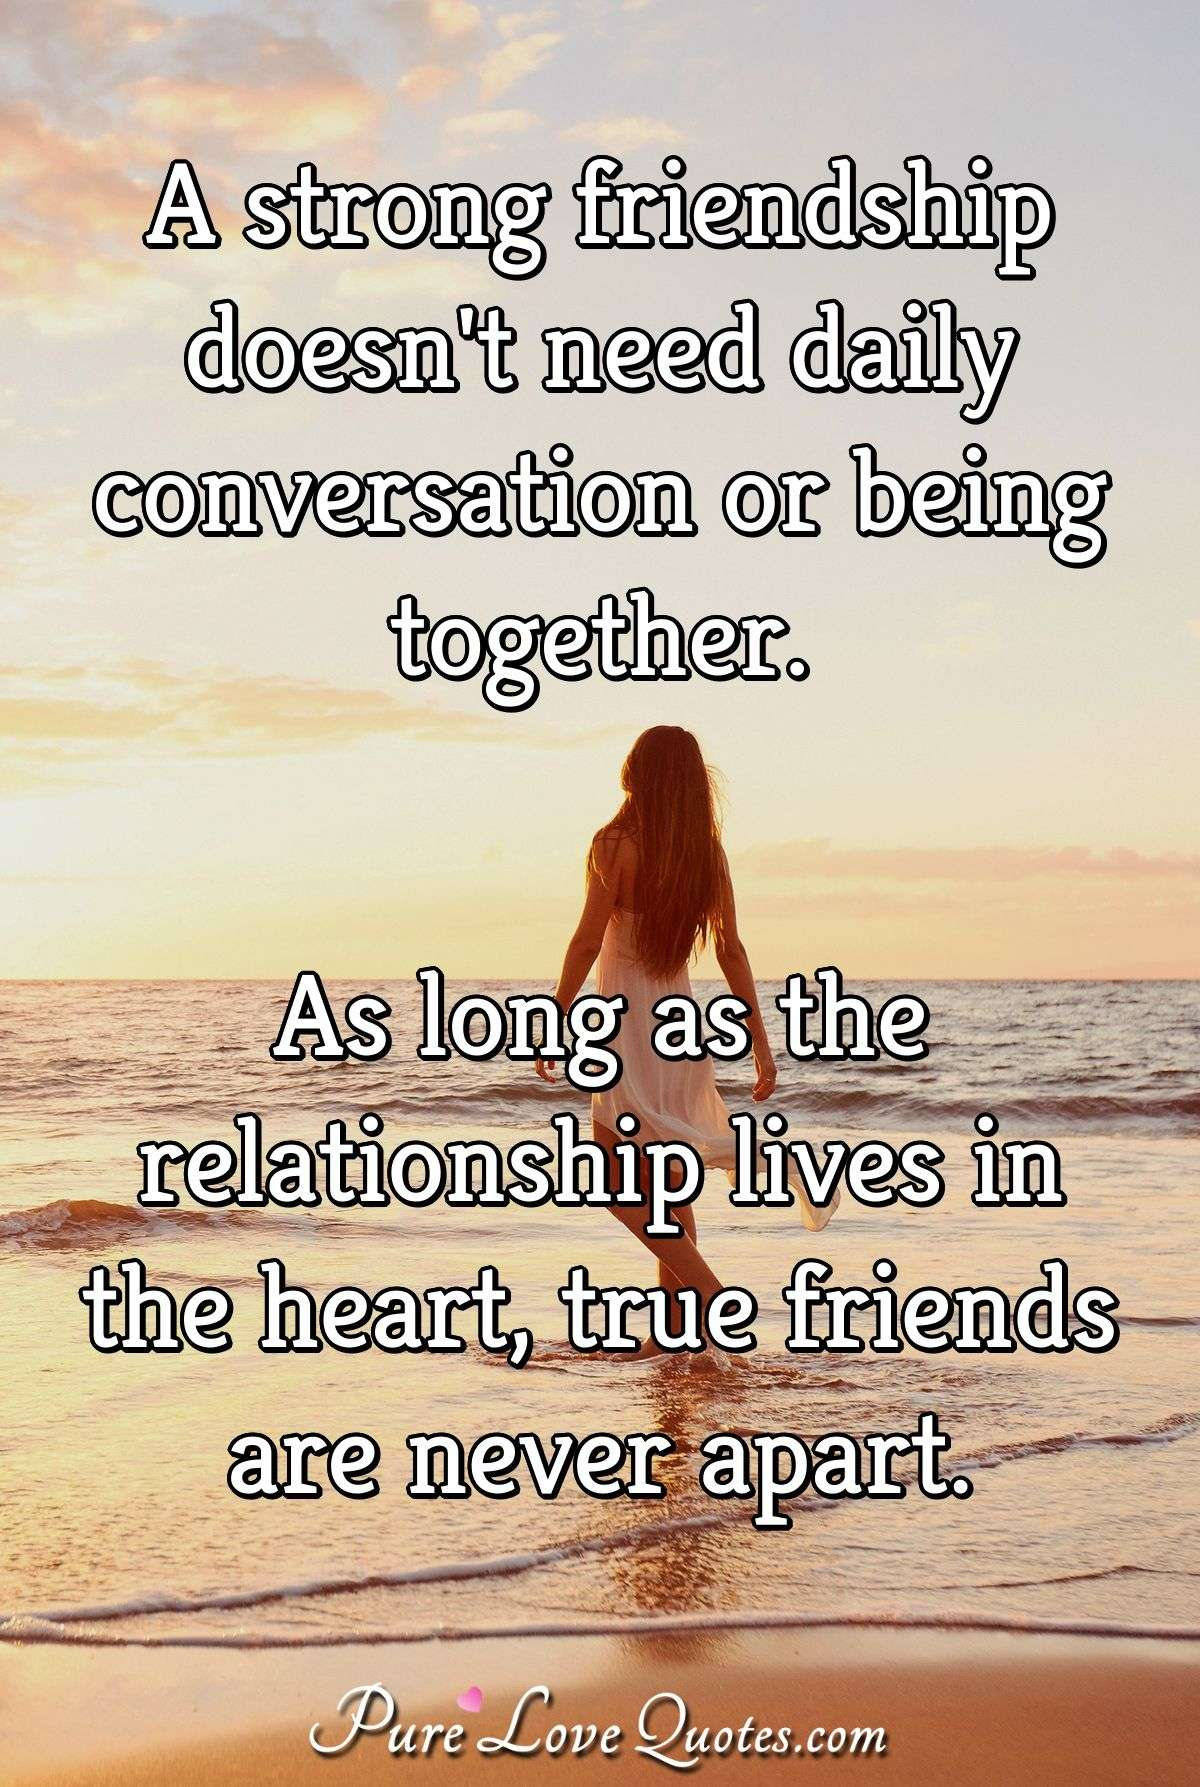 A strong friendship doesn't need daily conversation or being together. As long as the relationship lives in the heart, true friends are never apart. - Anonymous